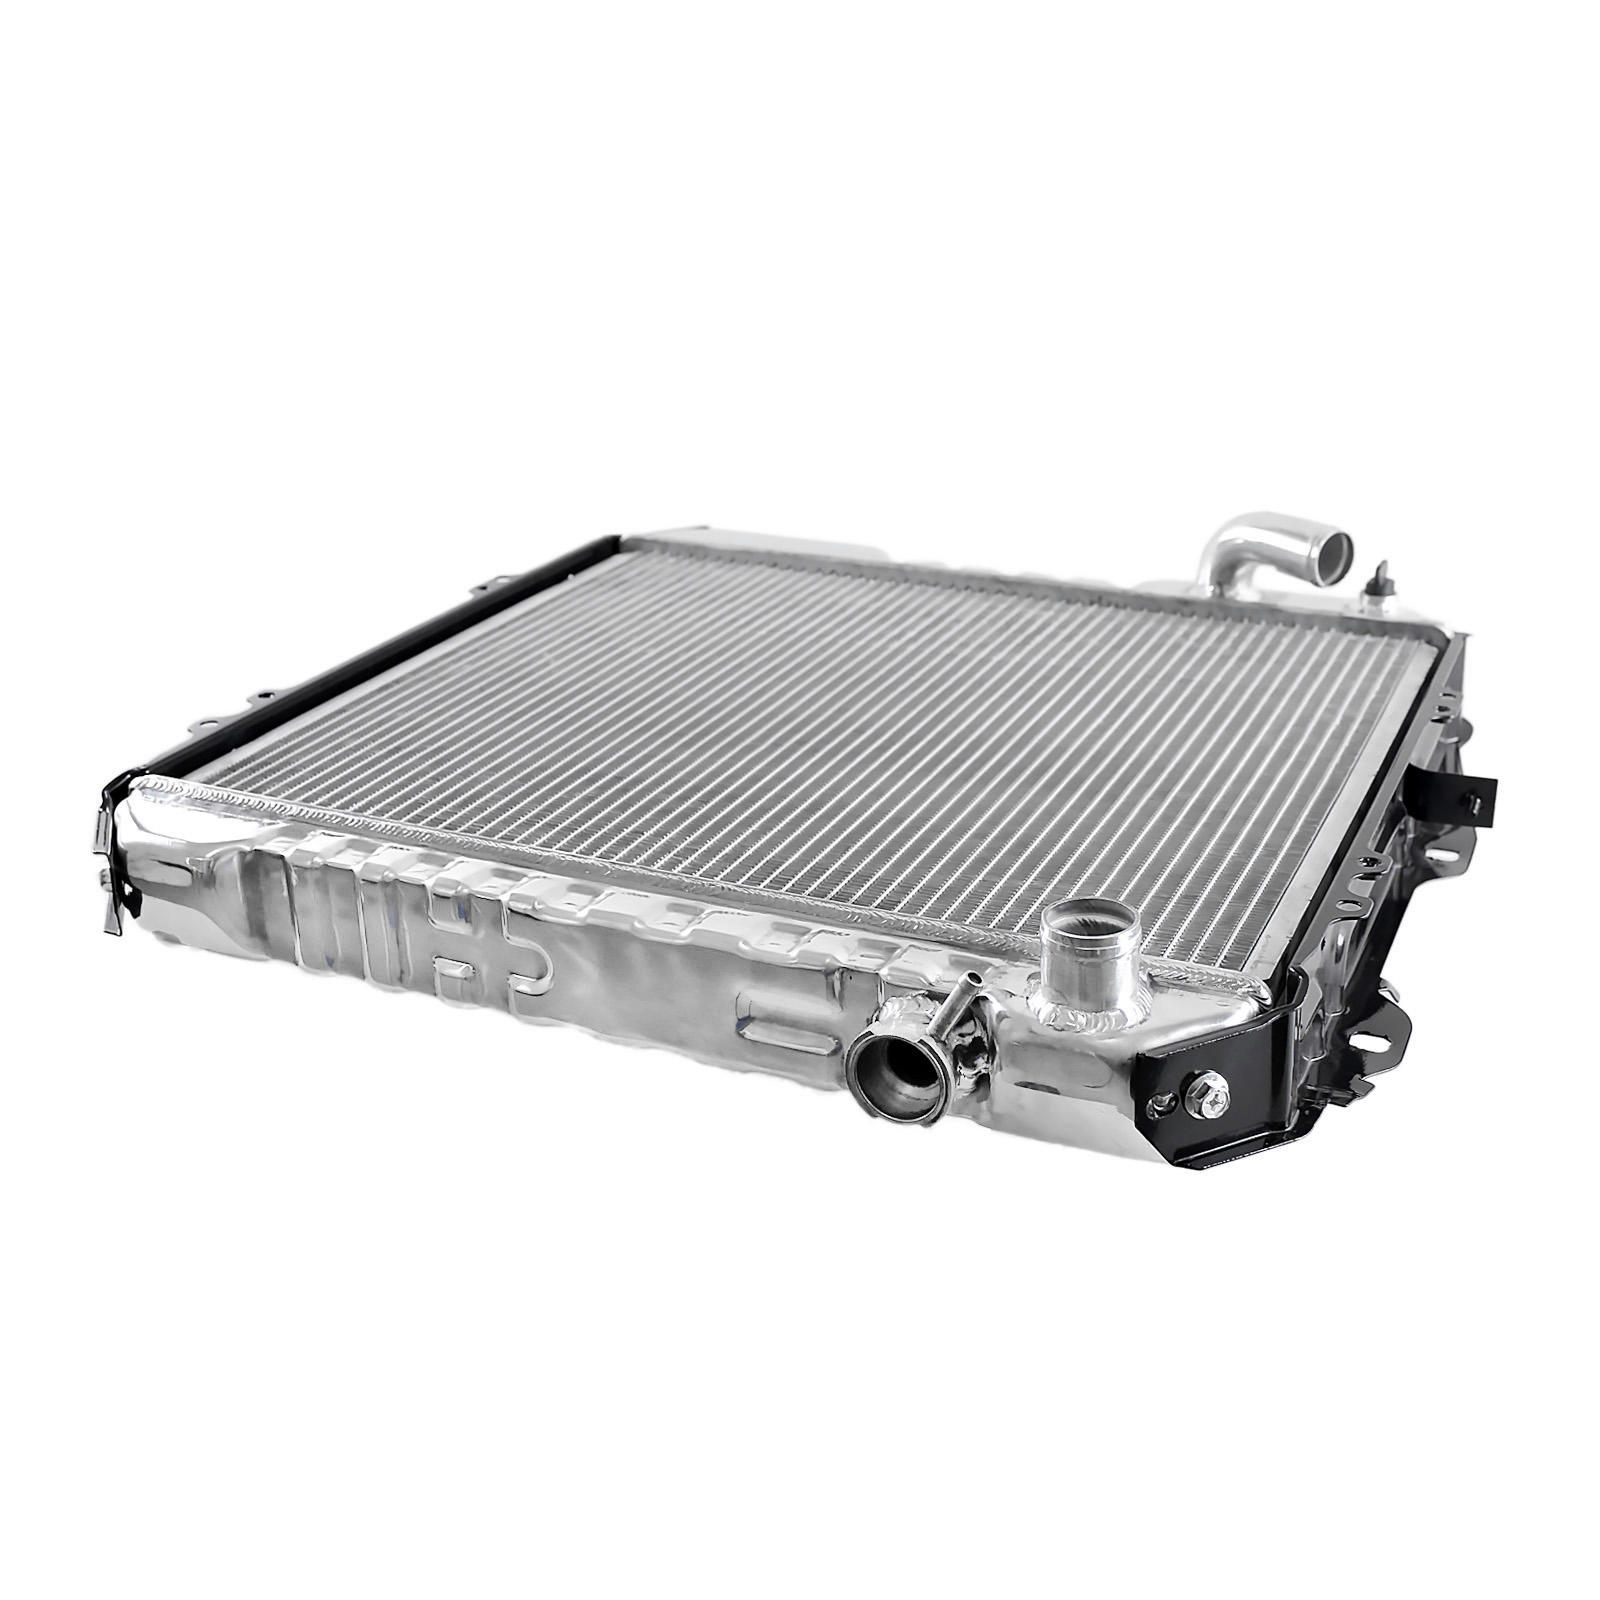 Dromedary-All Aluminum Radiator For Toyota Hilux Ln85 Ln86 28l 1988-1995 Manual-1